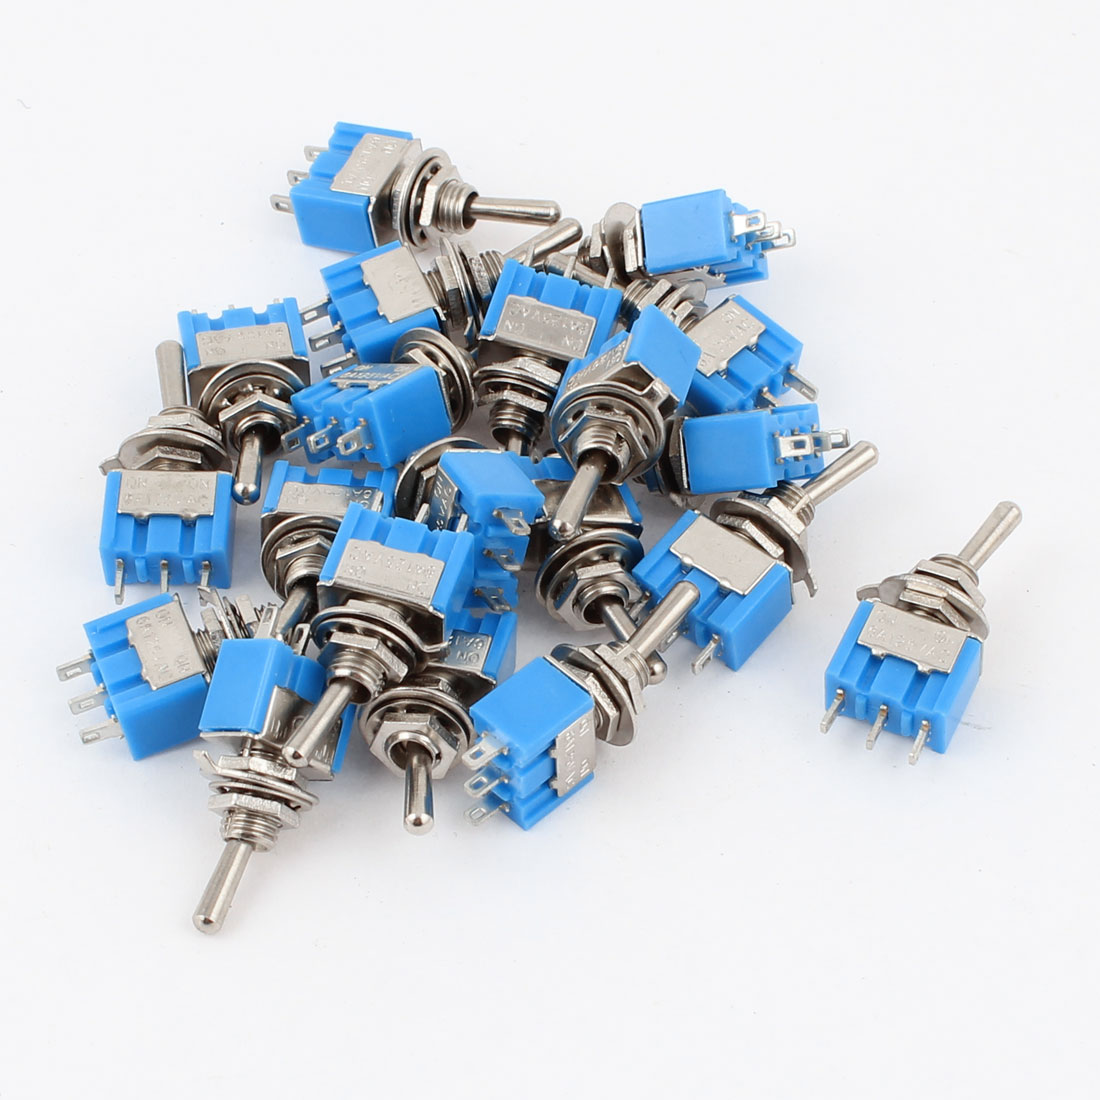 AC 125V 6A 3-Pin SPST Latching 2 Positions ON-ON Toggle Switch Switches 20pcs